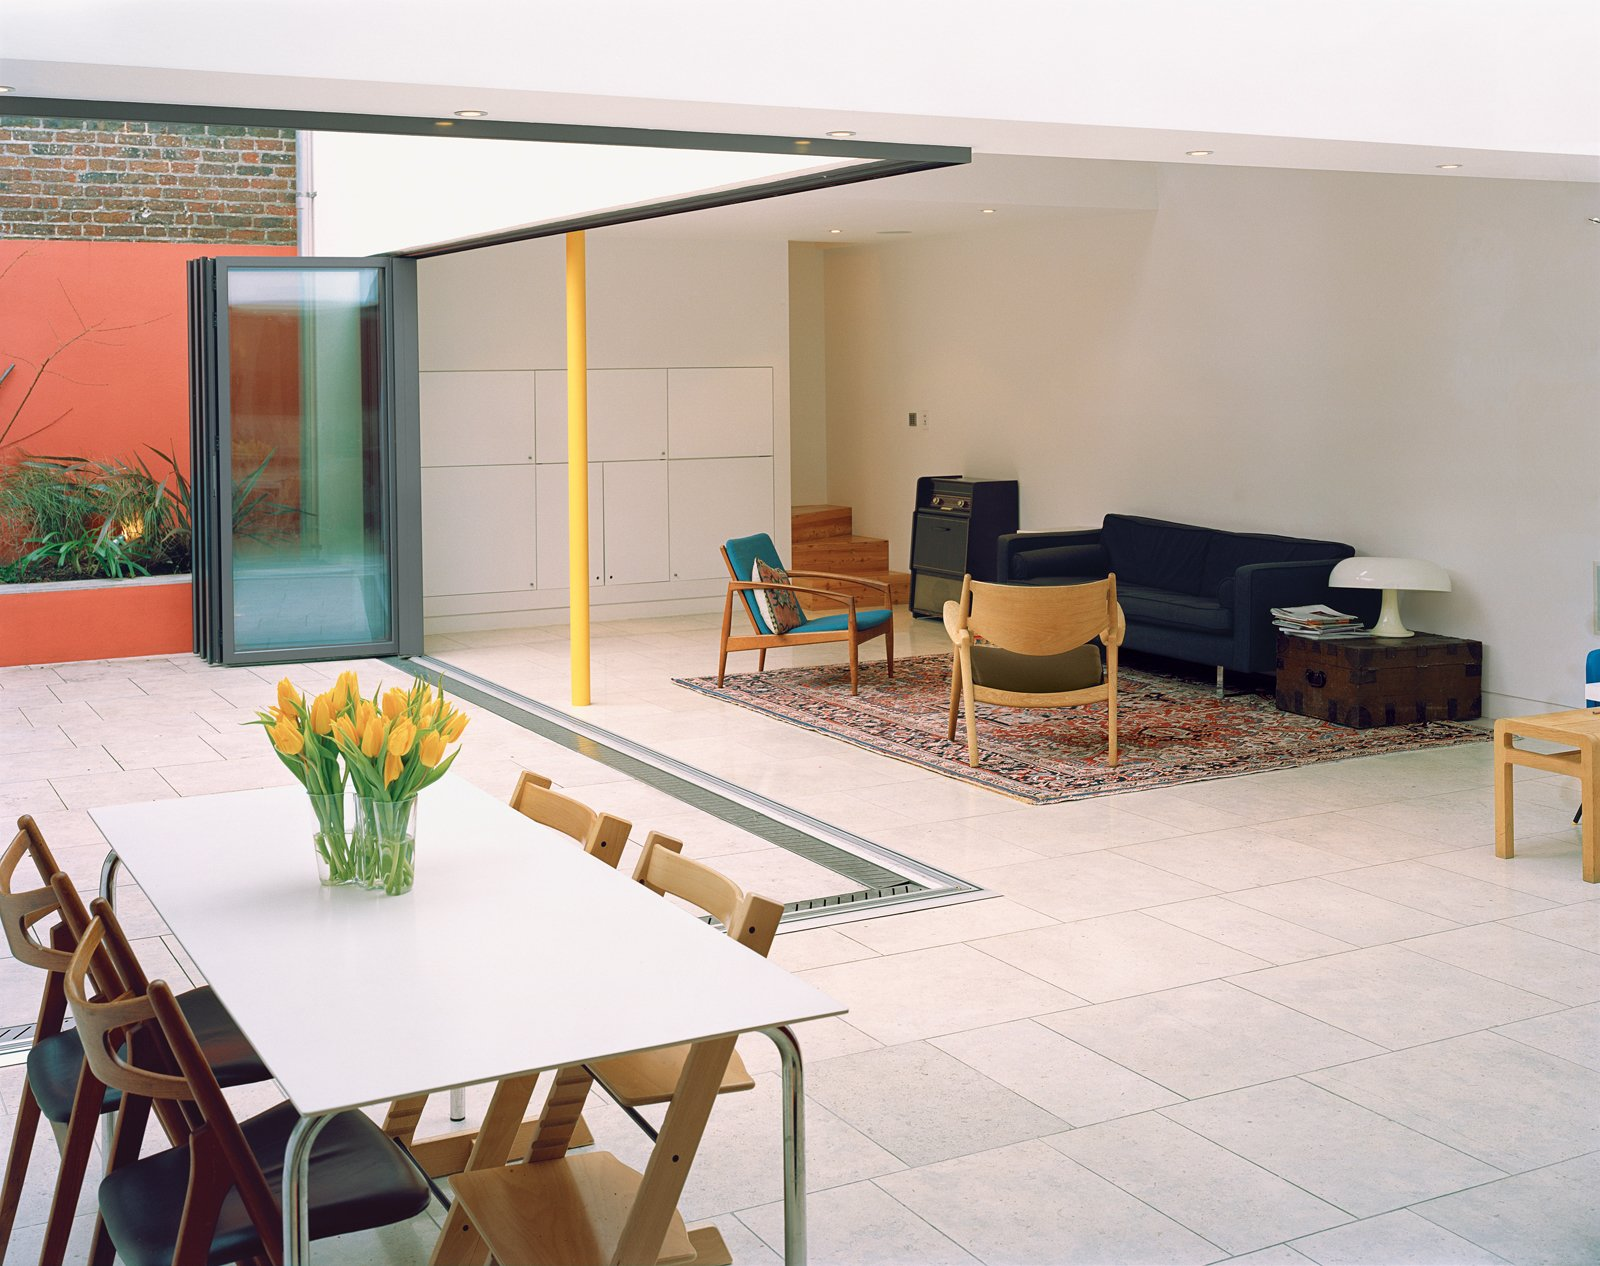 The glass wall separating the main living area and the inner courtyard garden opens like an accordion to create a barrier-free transition. Built-in planters along the walls of the courtyard add greenery without eating into the valuable surface   area of the courtyard.  Brilliant Examples of Indoor-Outdoor Homes by Zachary Edelson from A Slender Geothermal Cottage in London